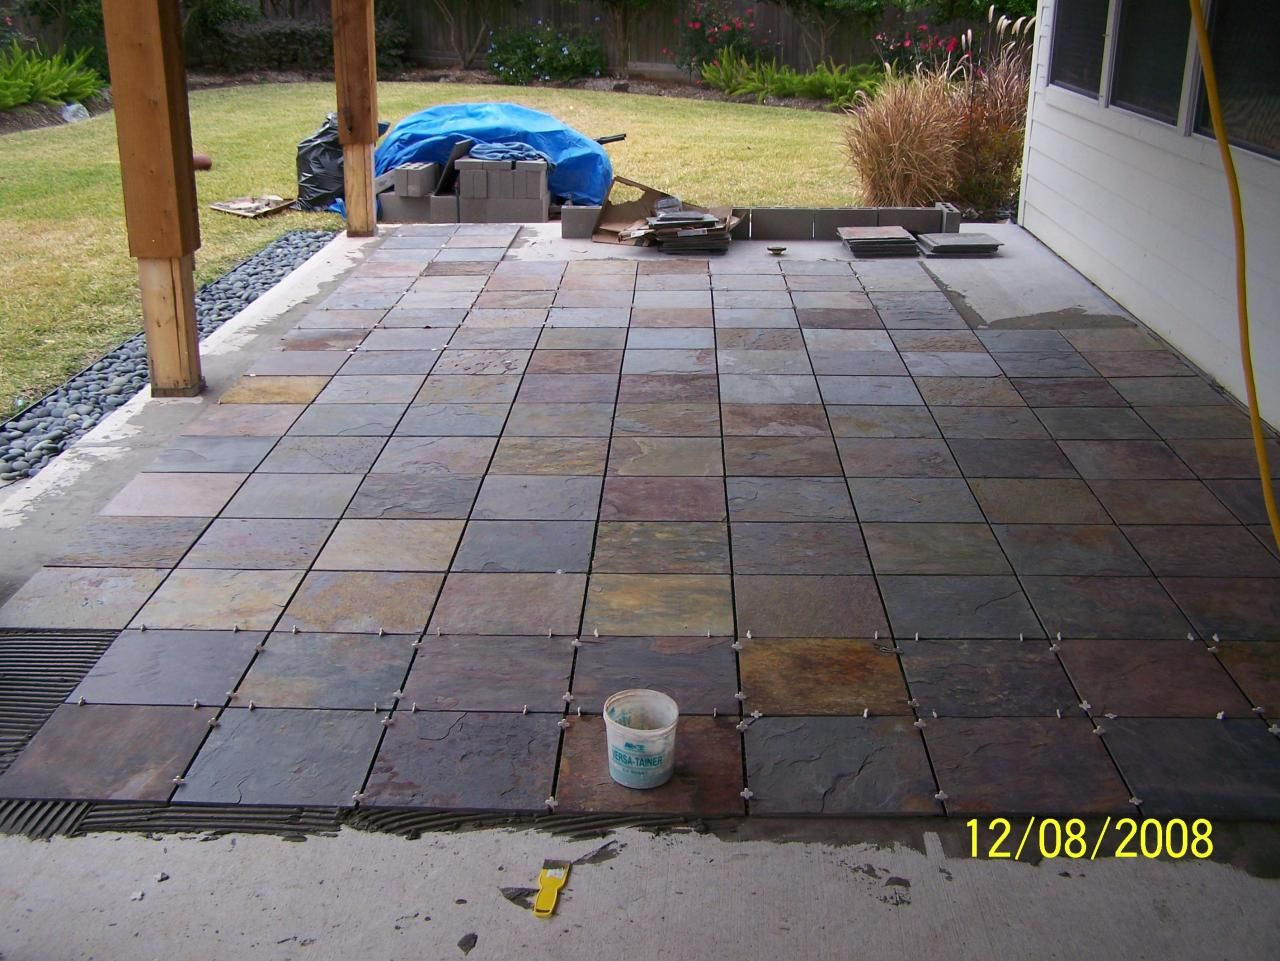 outdoor patio flooring options trim paint and new flooring patio tile install slate patio in progress - Patio Flooring